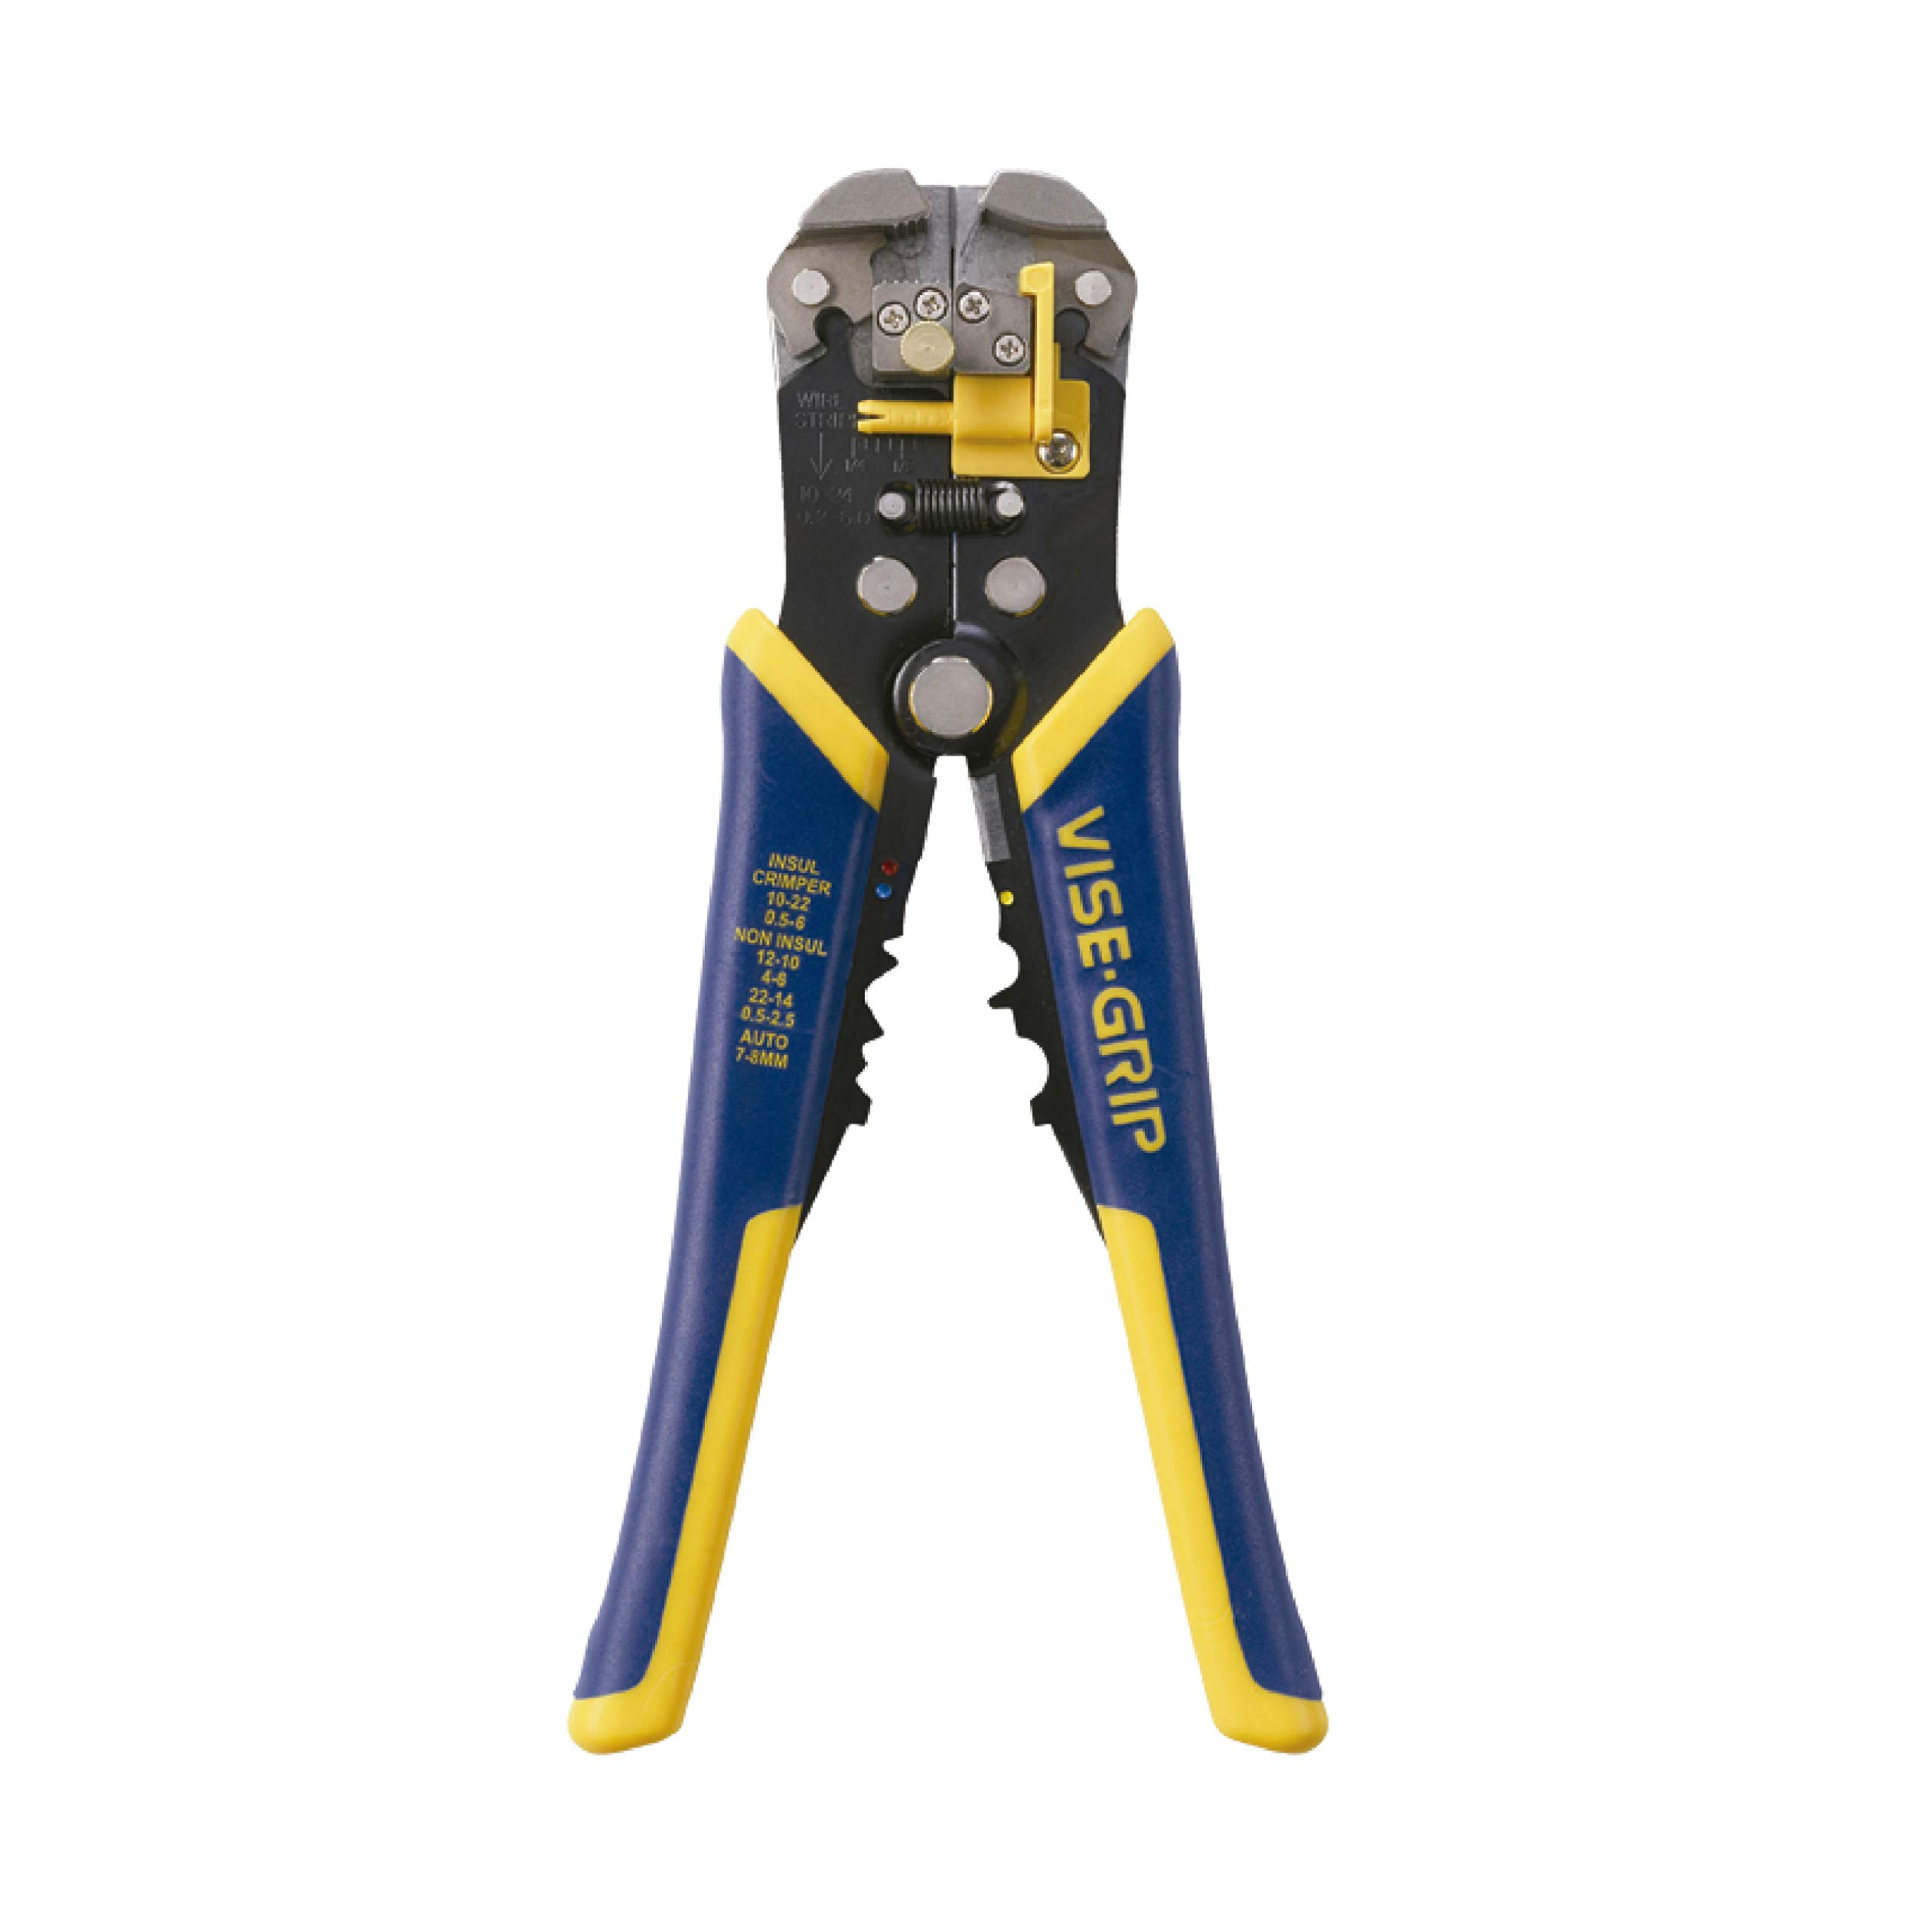 IRWIN VISE-GRIP 2078300 Self-Adjusting Wire Stripper, 8'' by Irwin Tools